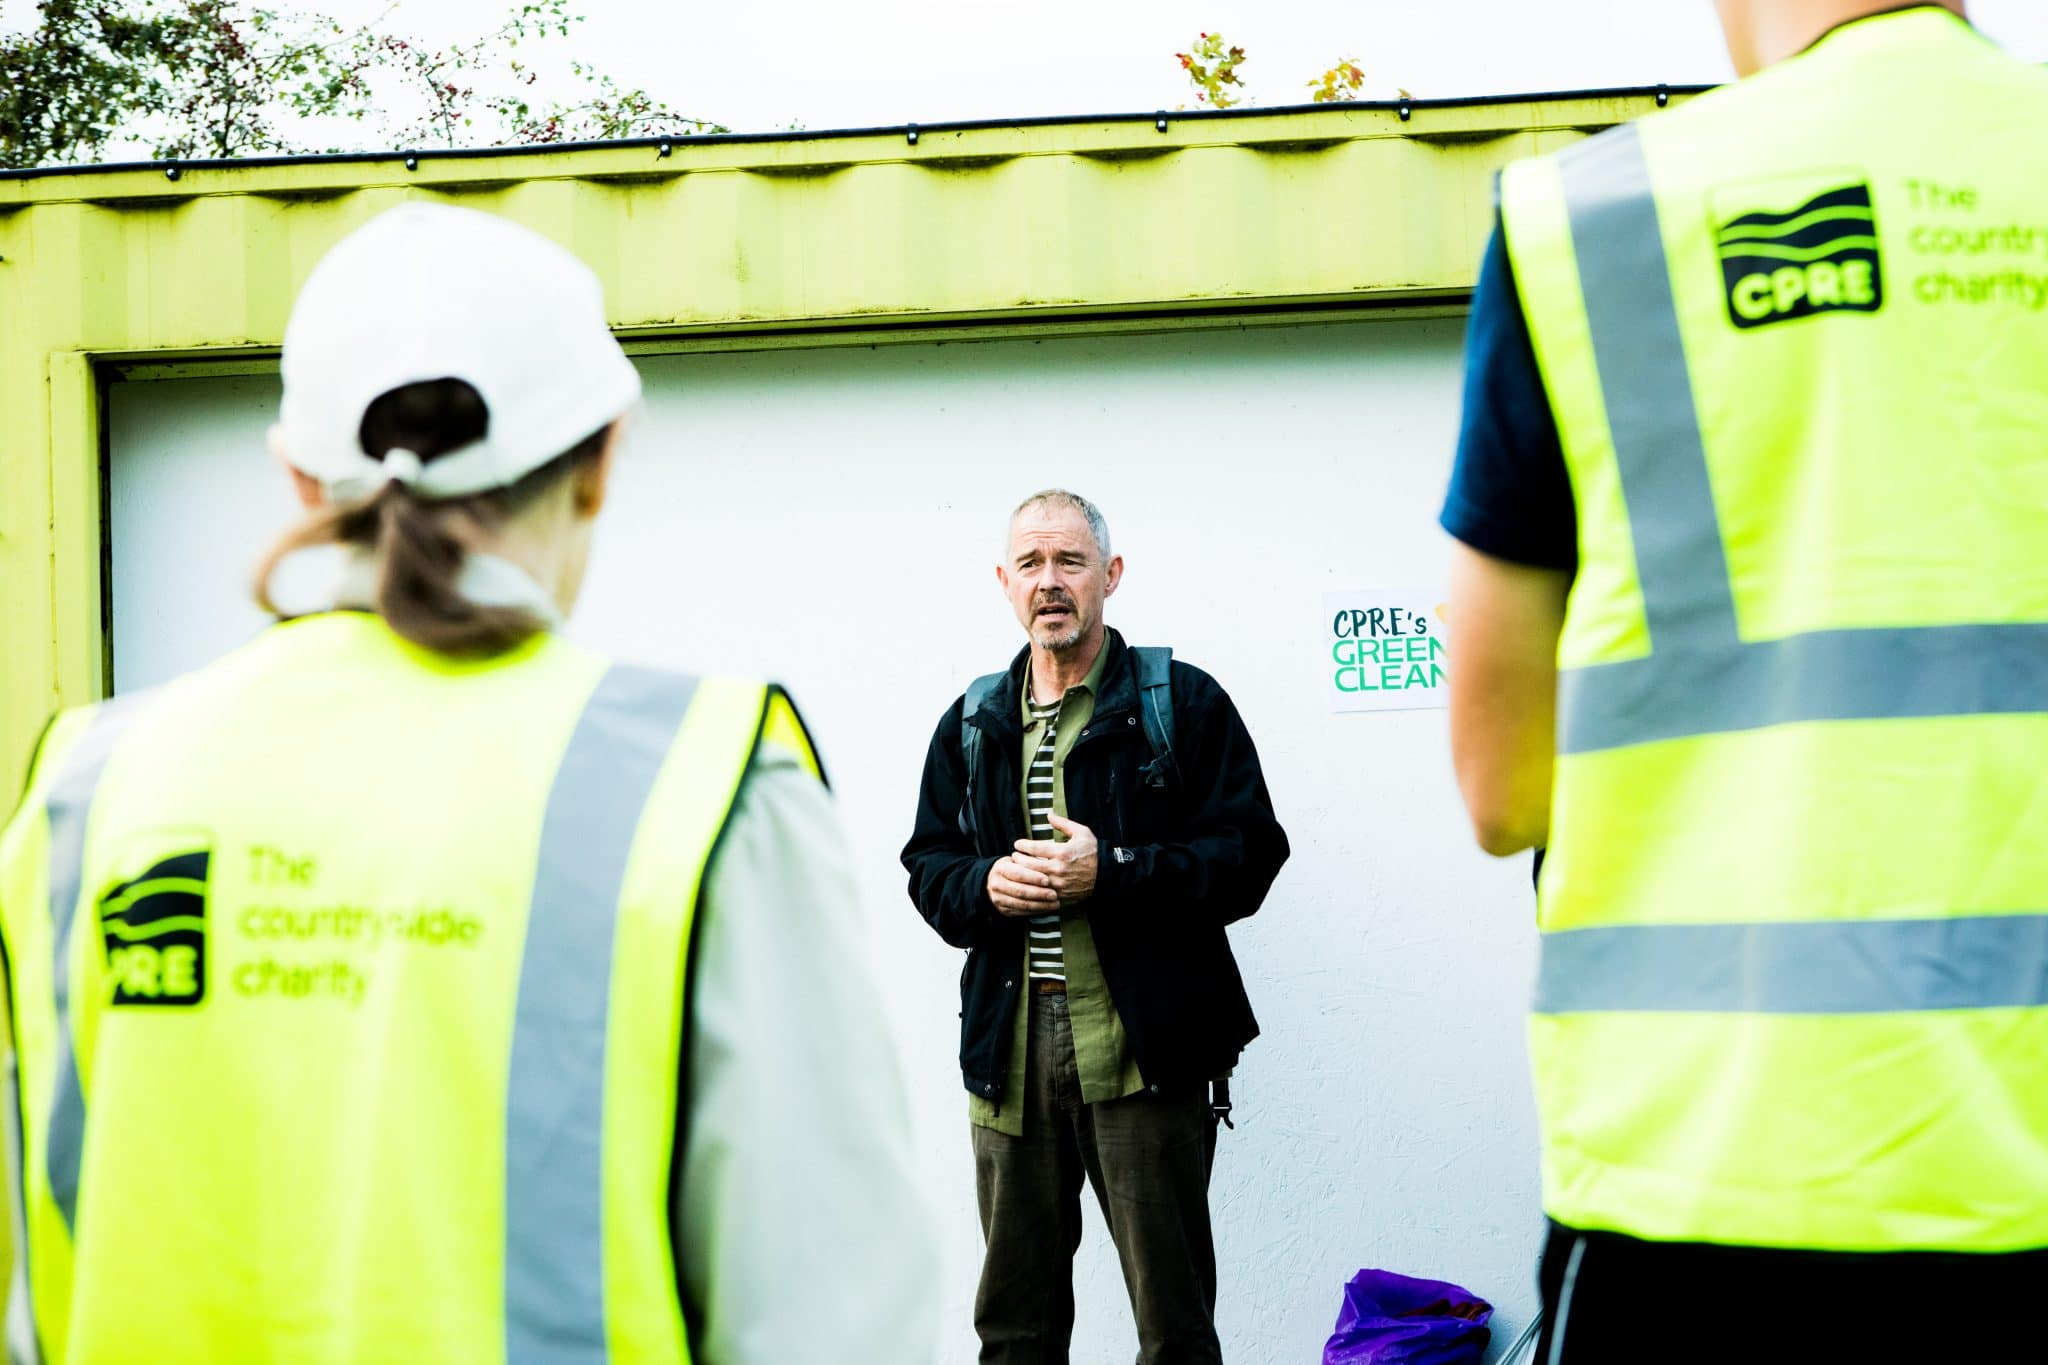 Man speaking to volunteers before litter pick